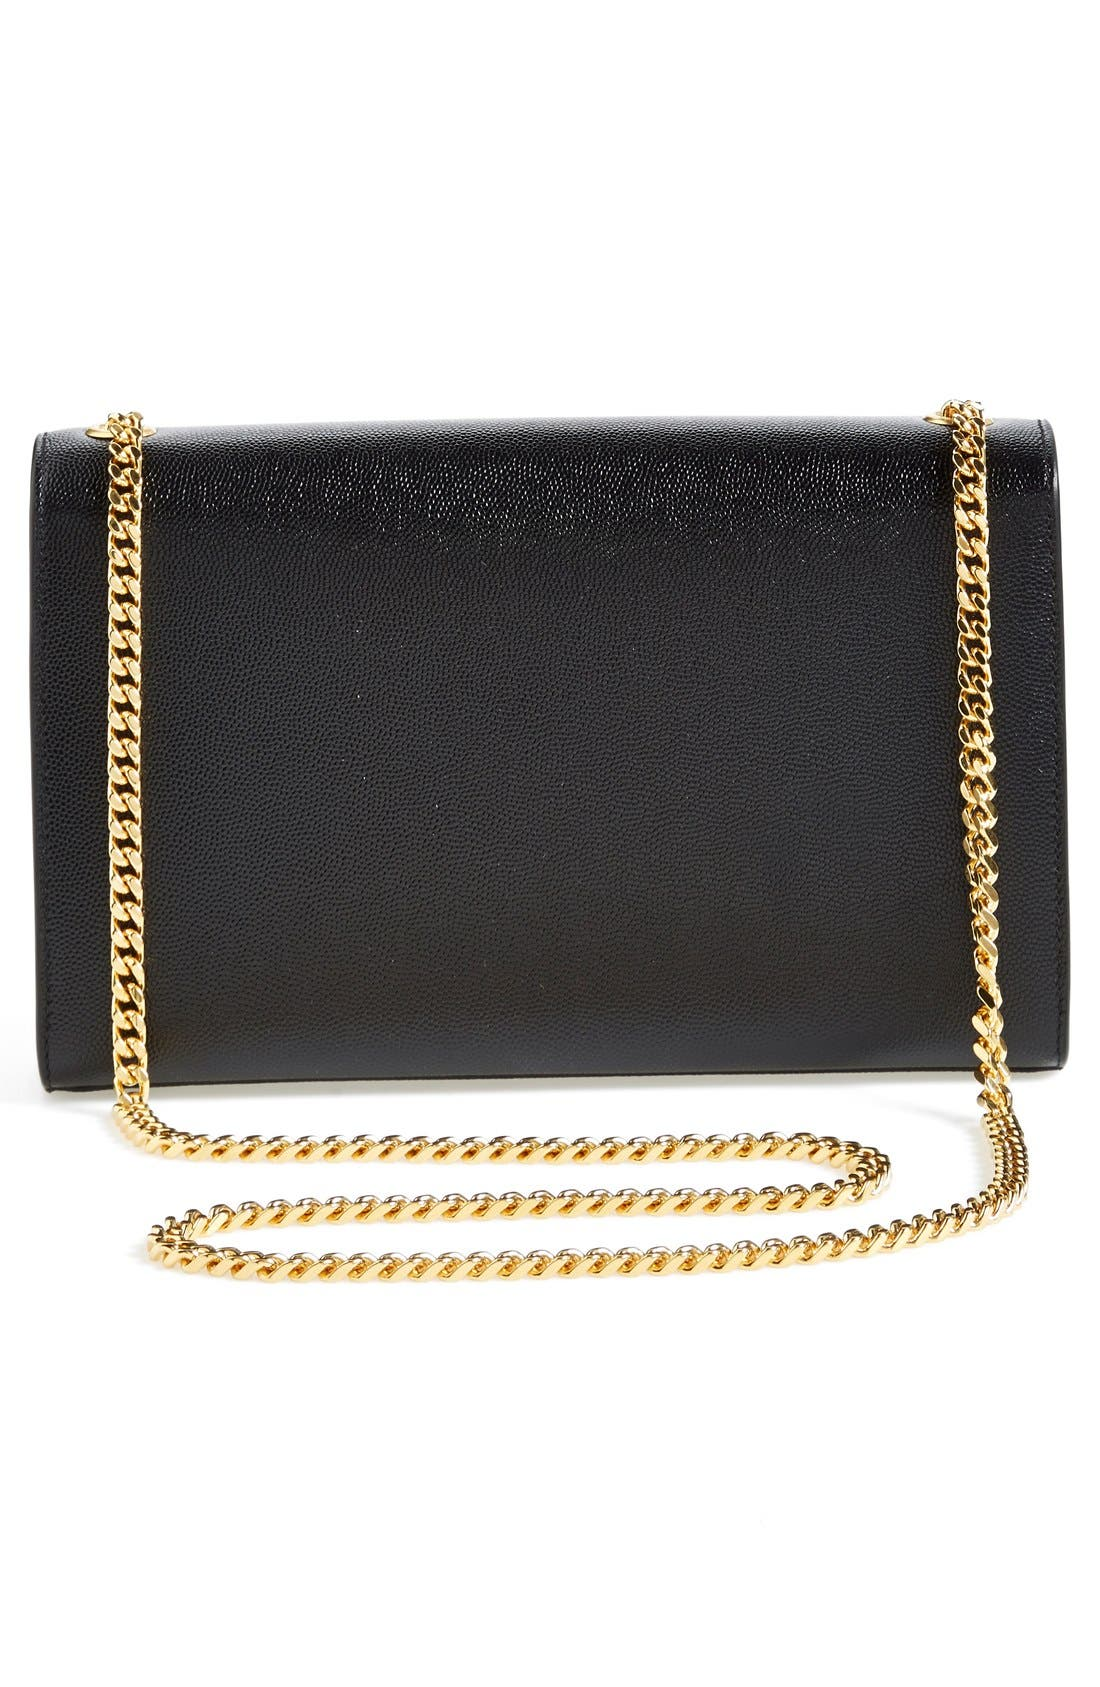 'Medium Kate' Leather Chain Shoulder Bag,                             Alternate thumbnail 3, color,                             Noir